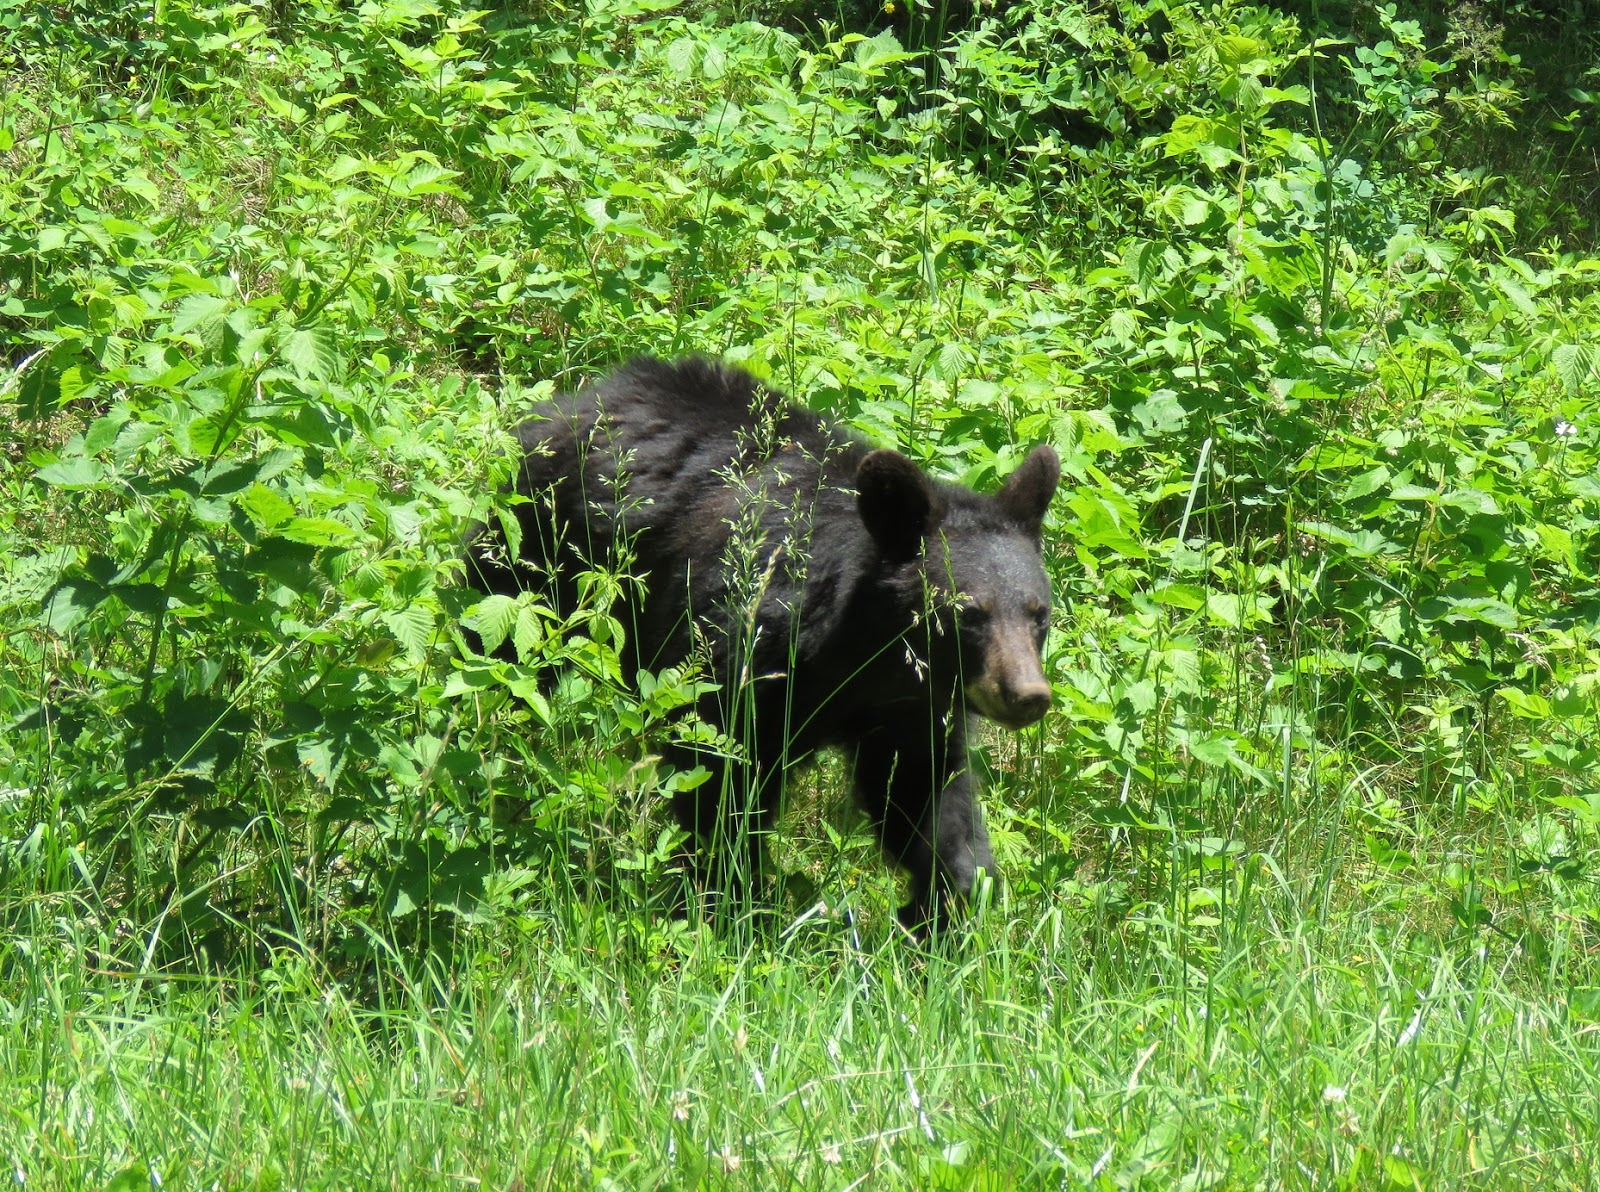 Black Bear Seen Along The Skyline Drive In Northern Section Of Park